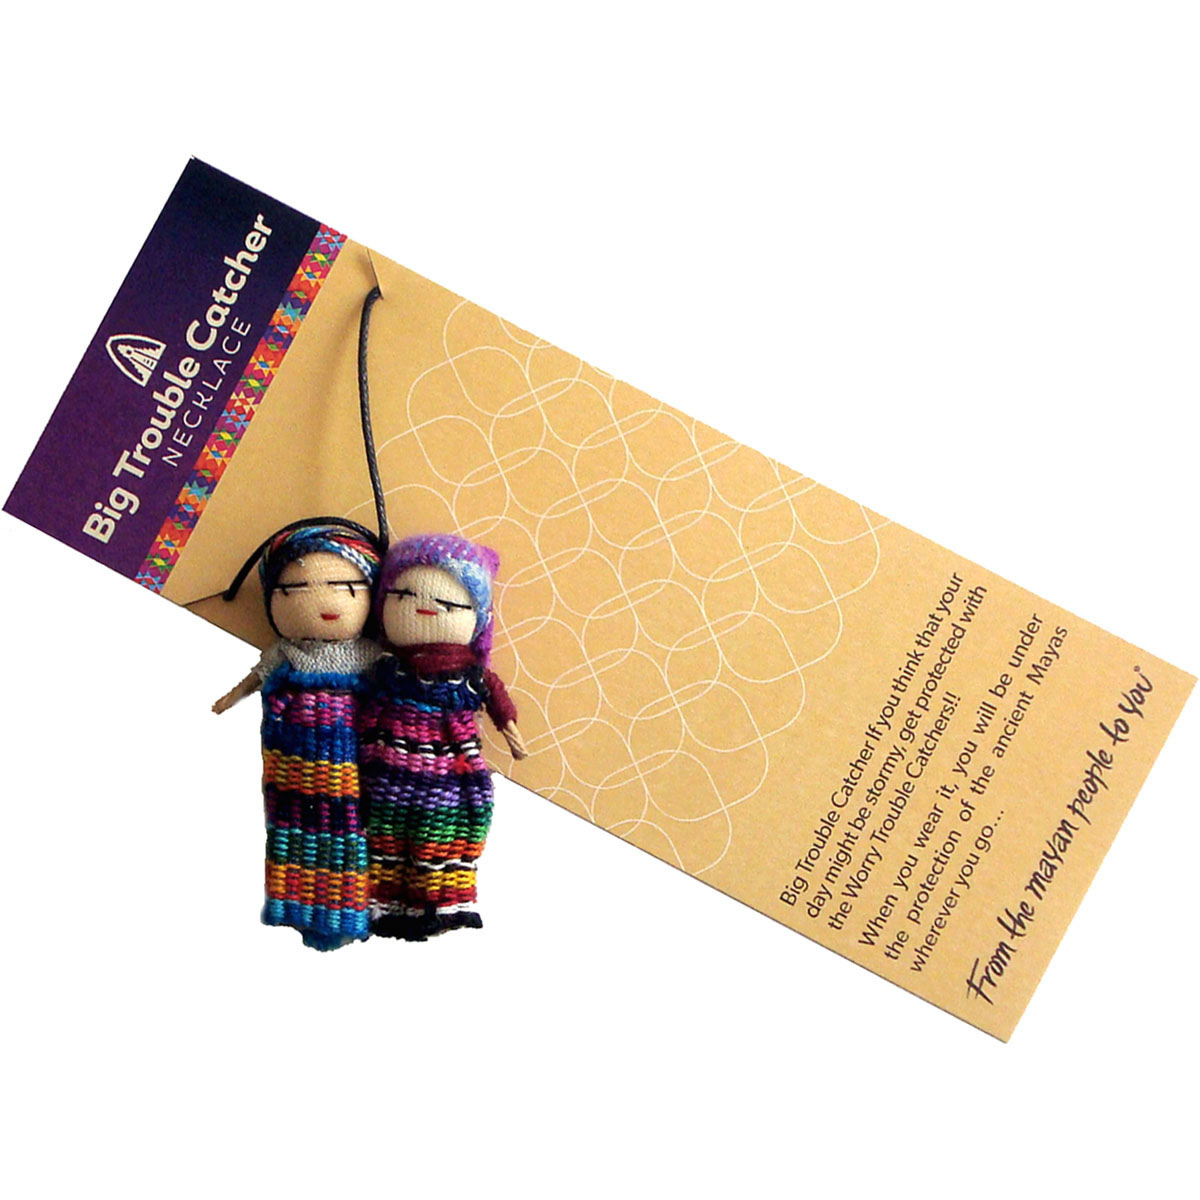 Worry Doll - Big Trouble Worry Doll Necklace